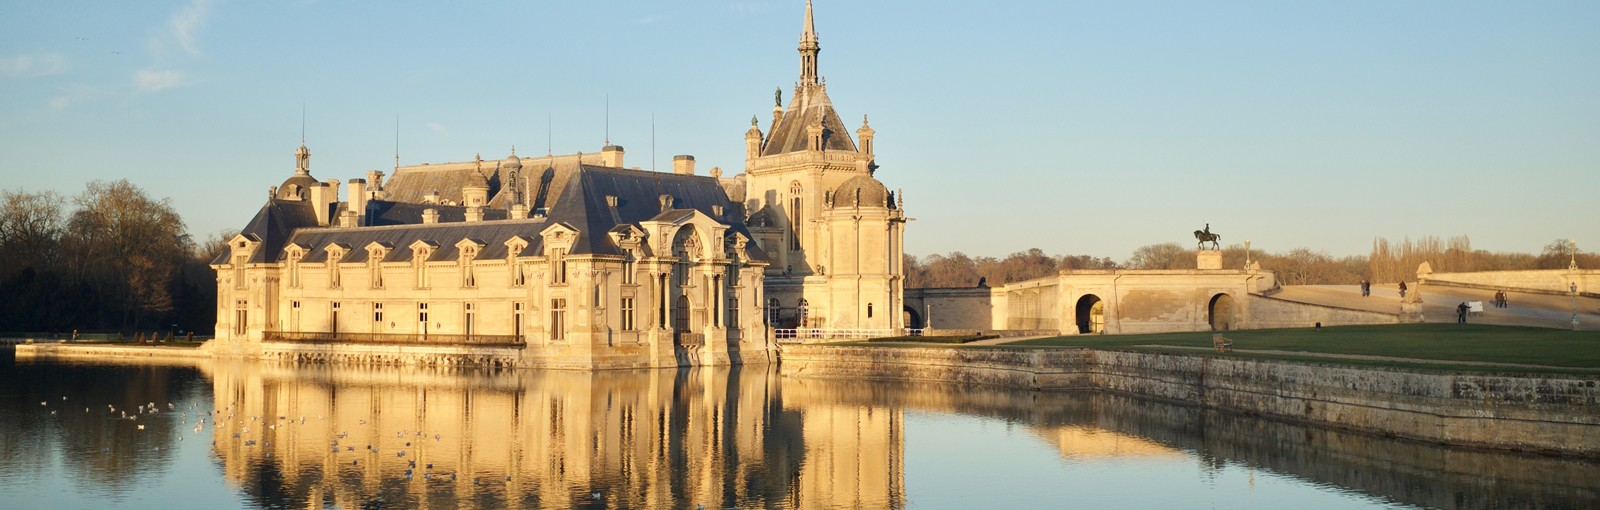 Tours Chantilly - Half days - Day tours from Paris